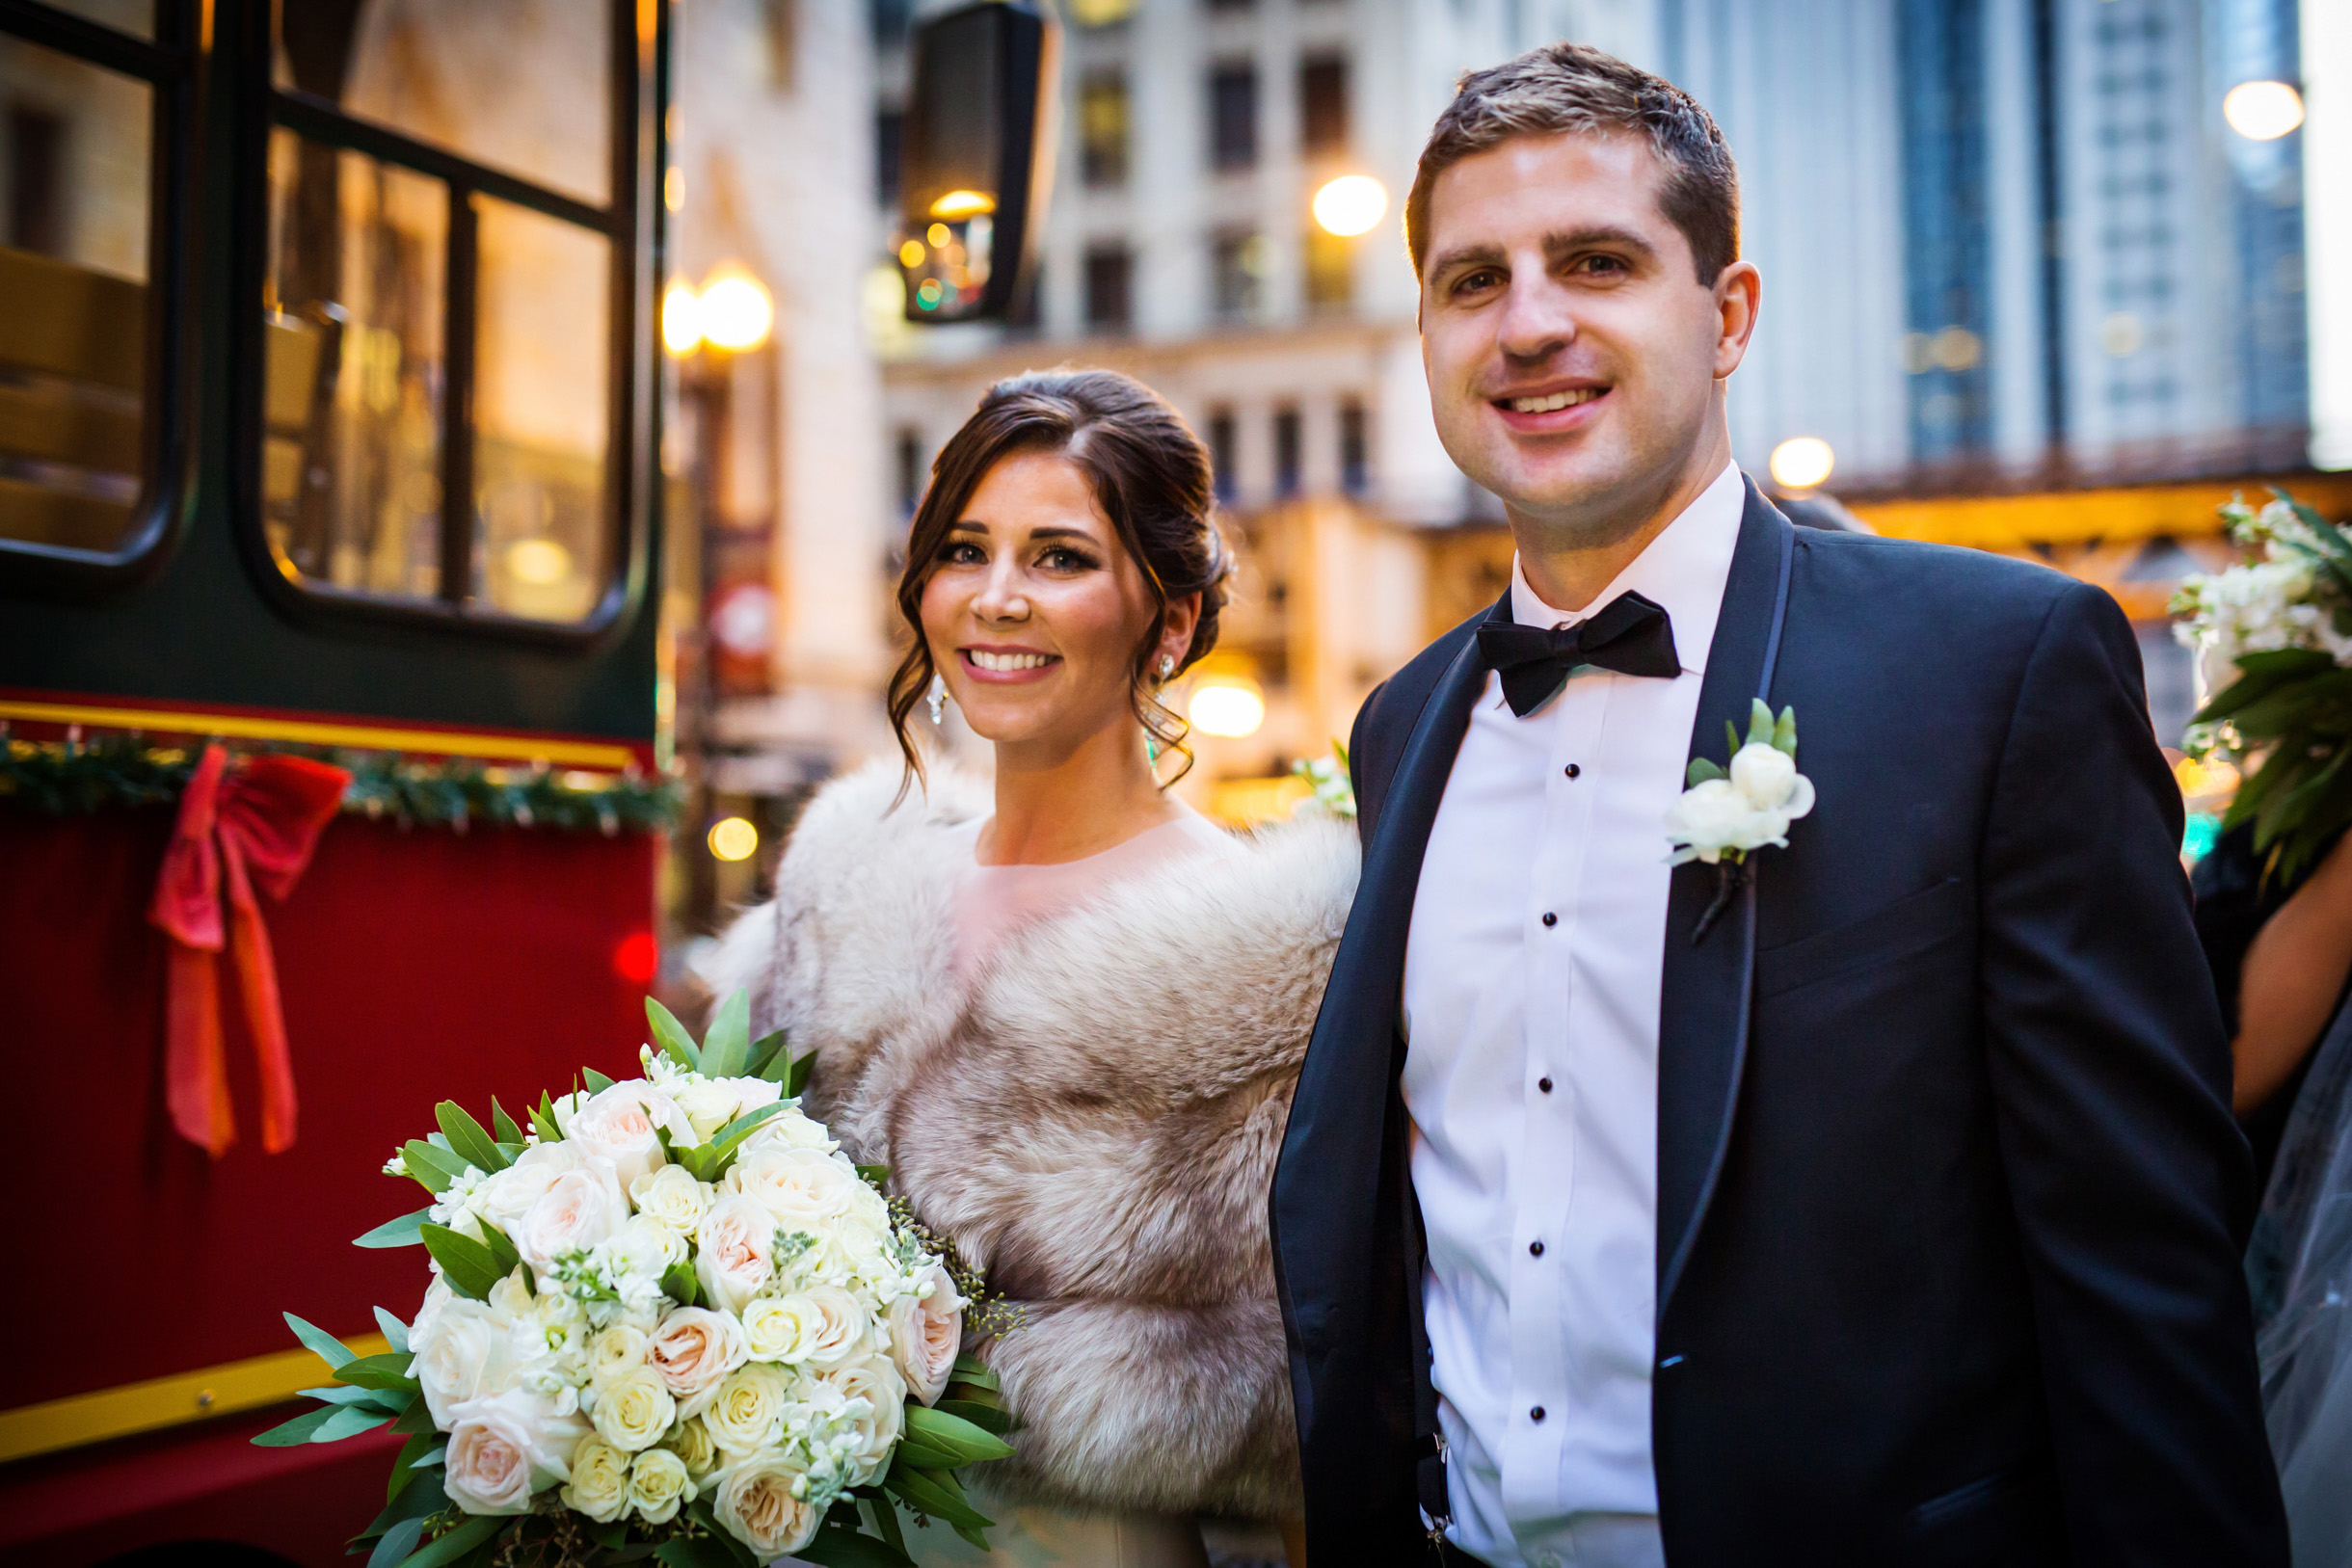 Winter wedding photo of bride and groom boarding a trolley in downtown Chicago